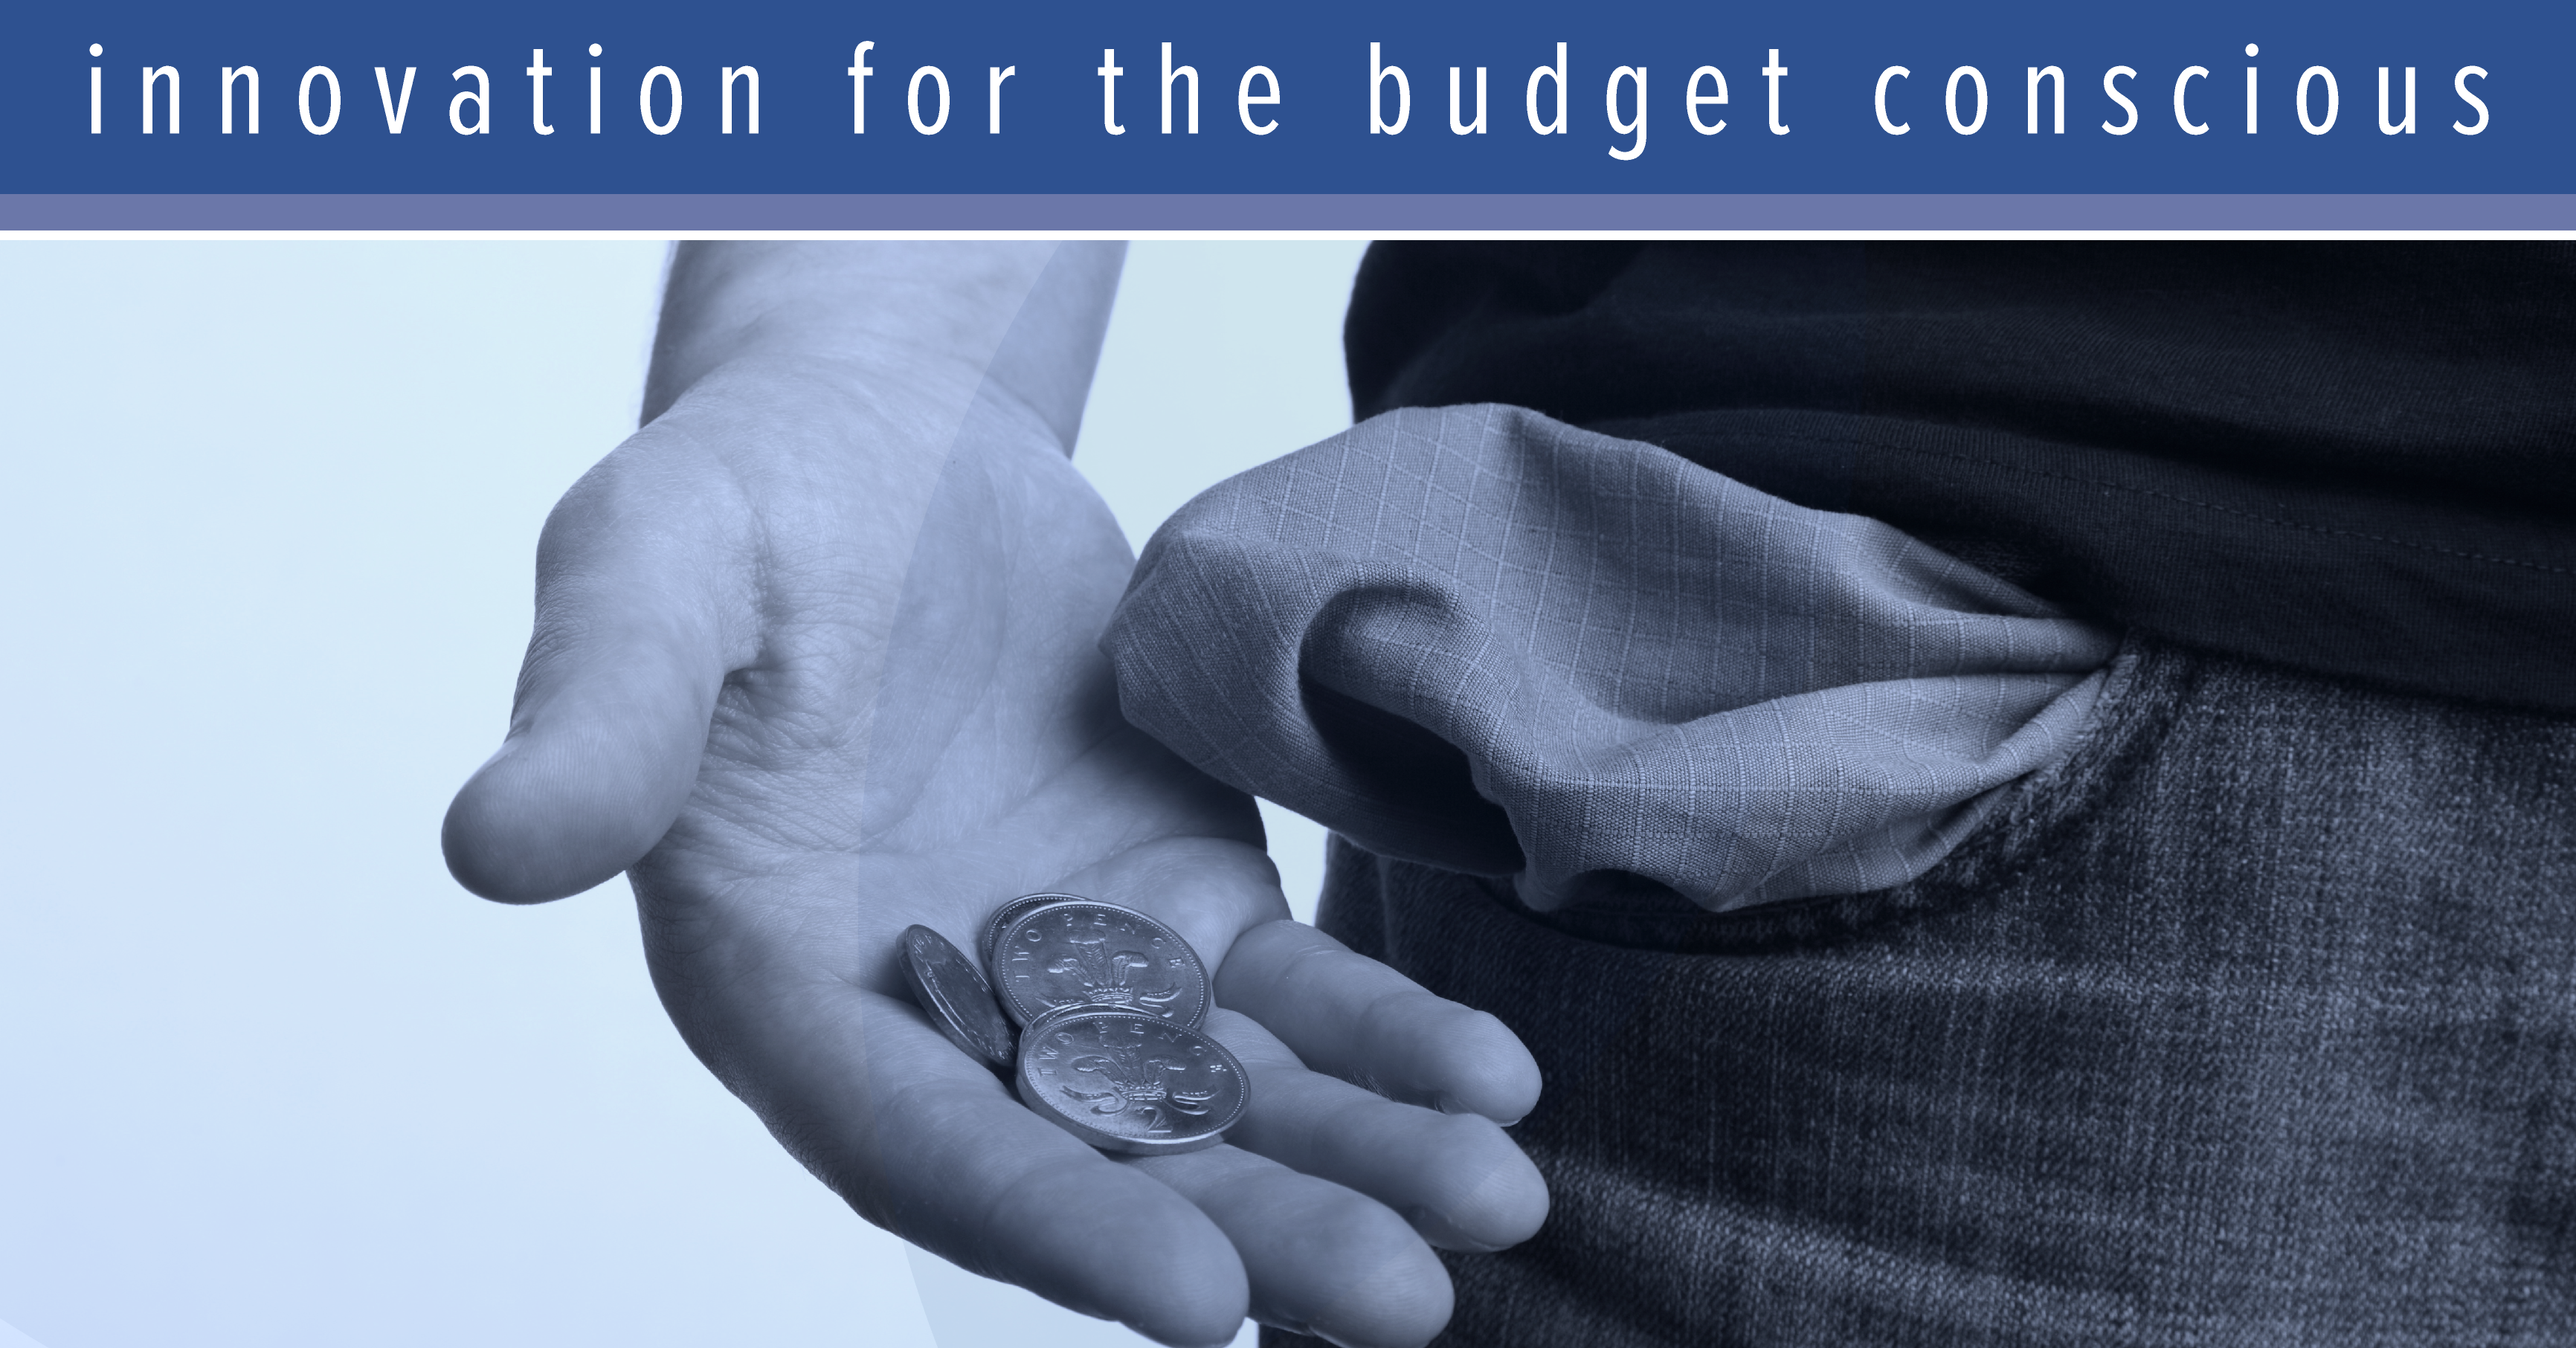 Innovation for the Budget Conscious